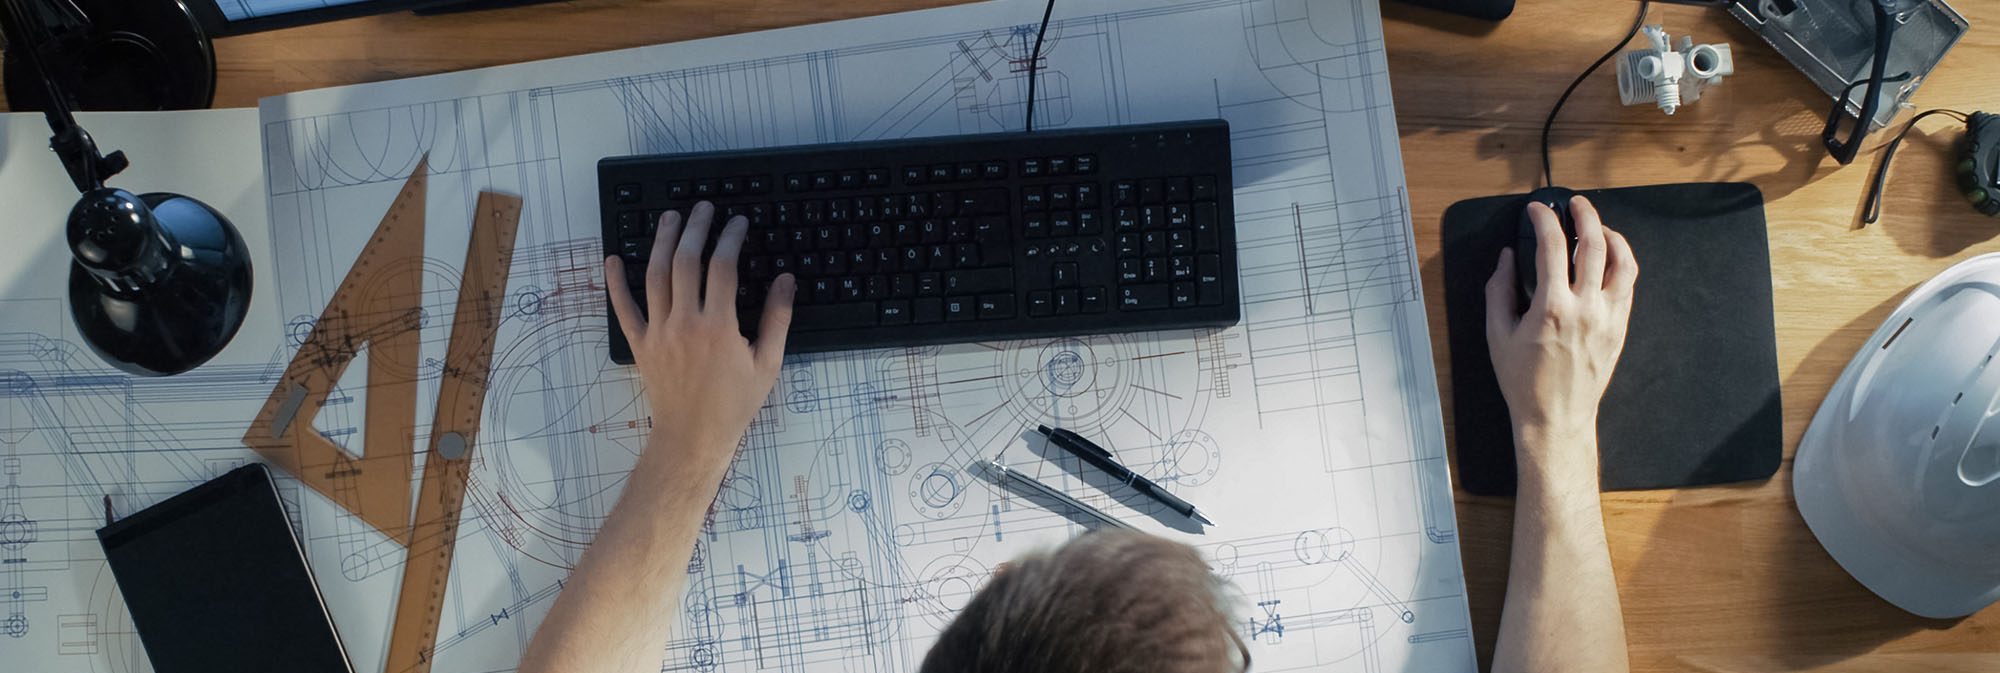 photo of a man working on design drafts at his desk